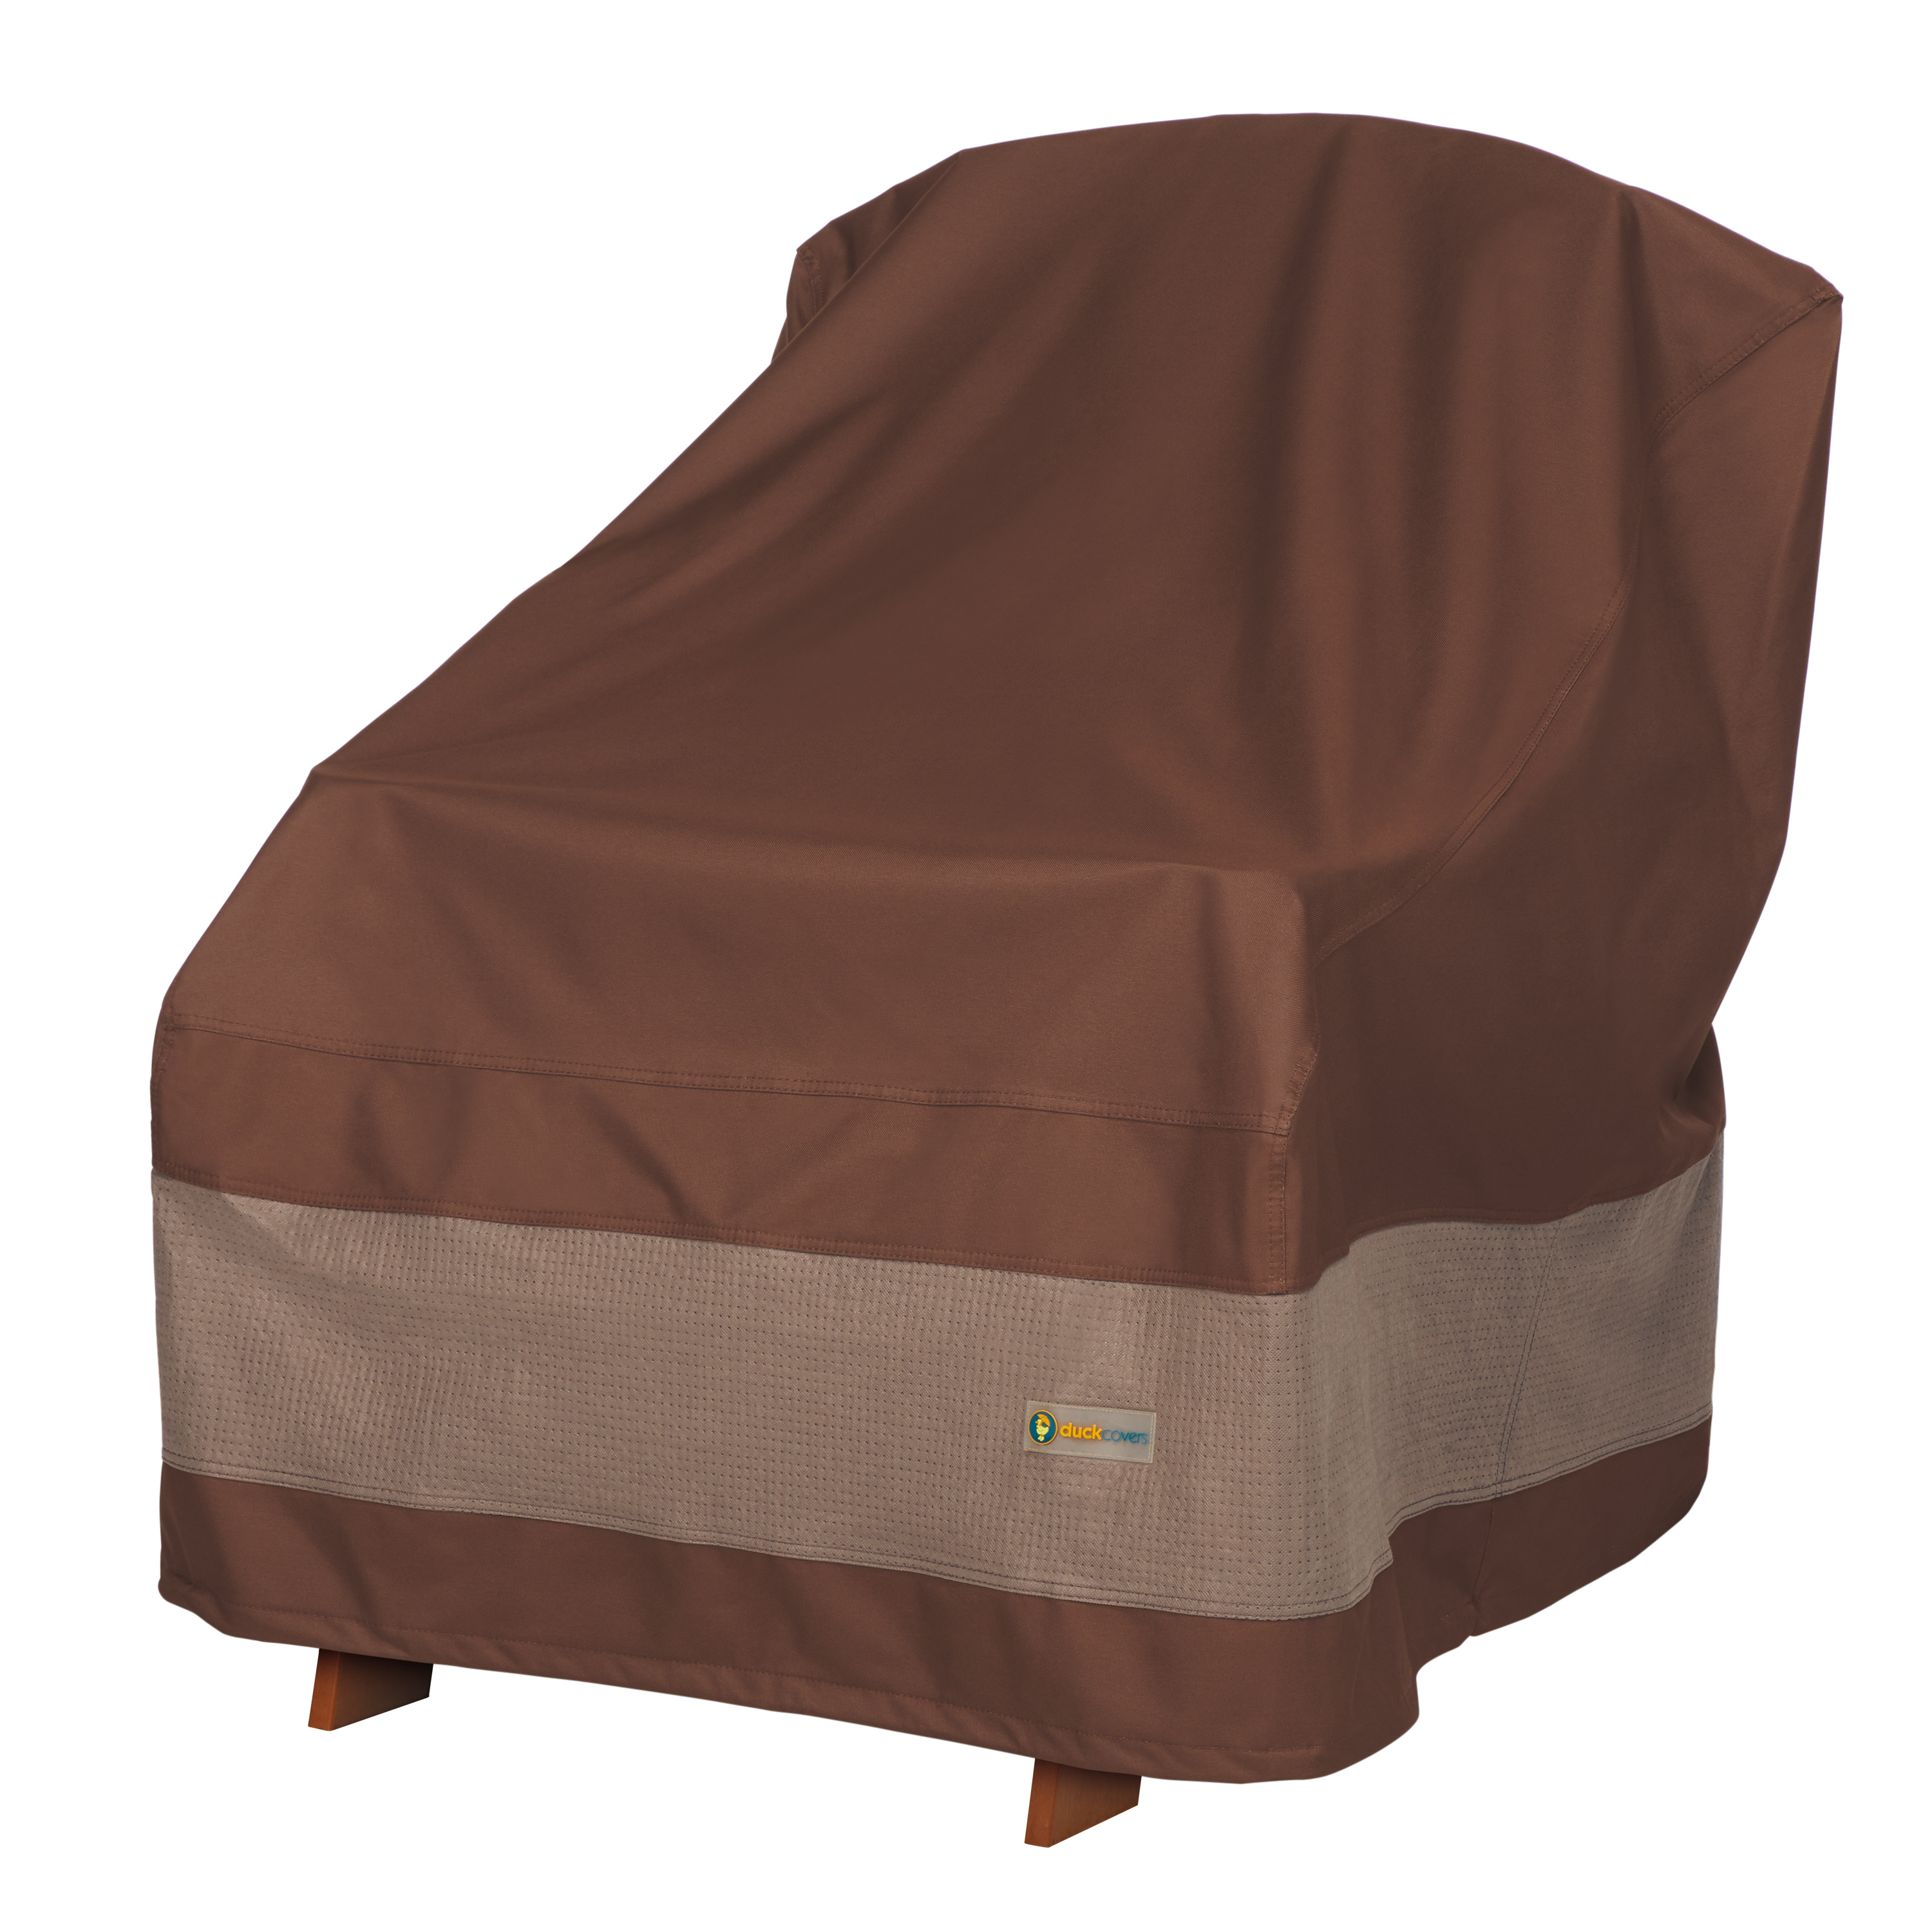 """Duck Covers 32""""x34""""x36"""" Brown Patio Adirondack Chair Cover, Ultimate"""